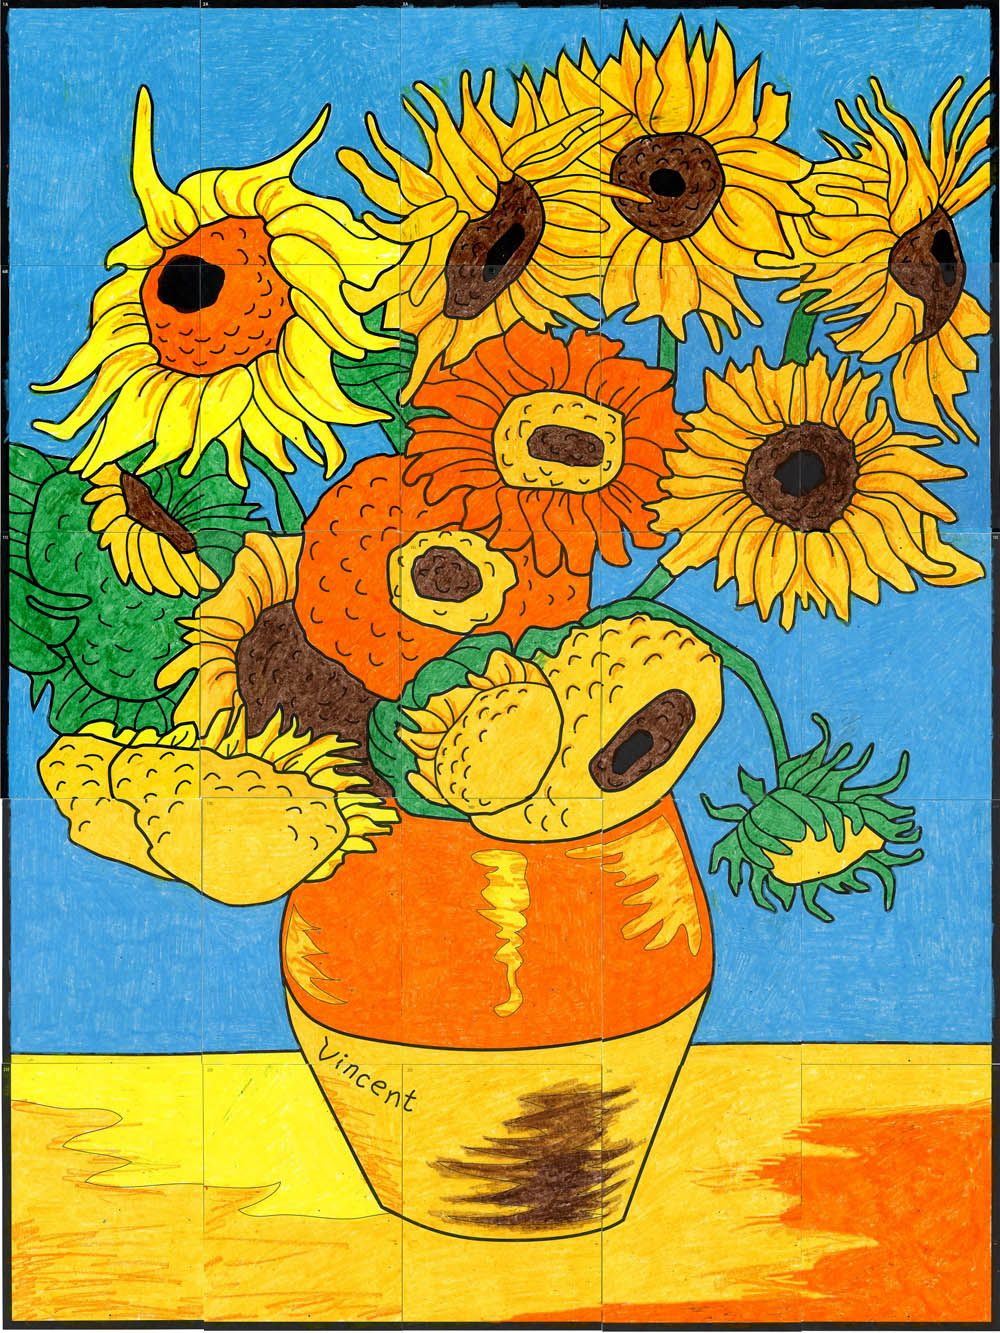 Van gogh s sunflower mural van gogh sunflowers and for Mural van gogh